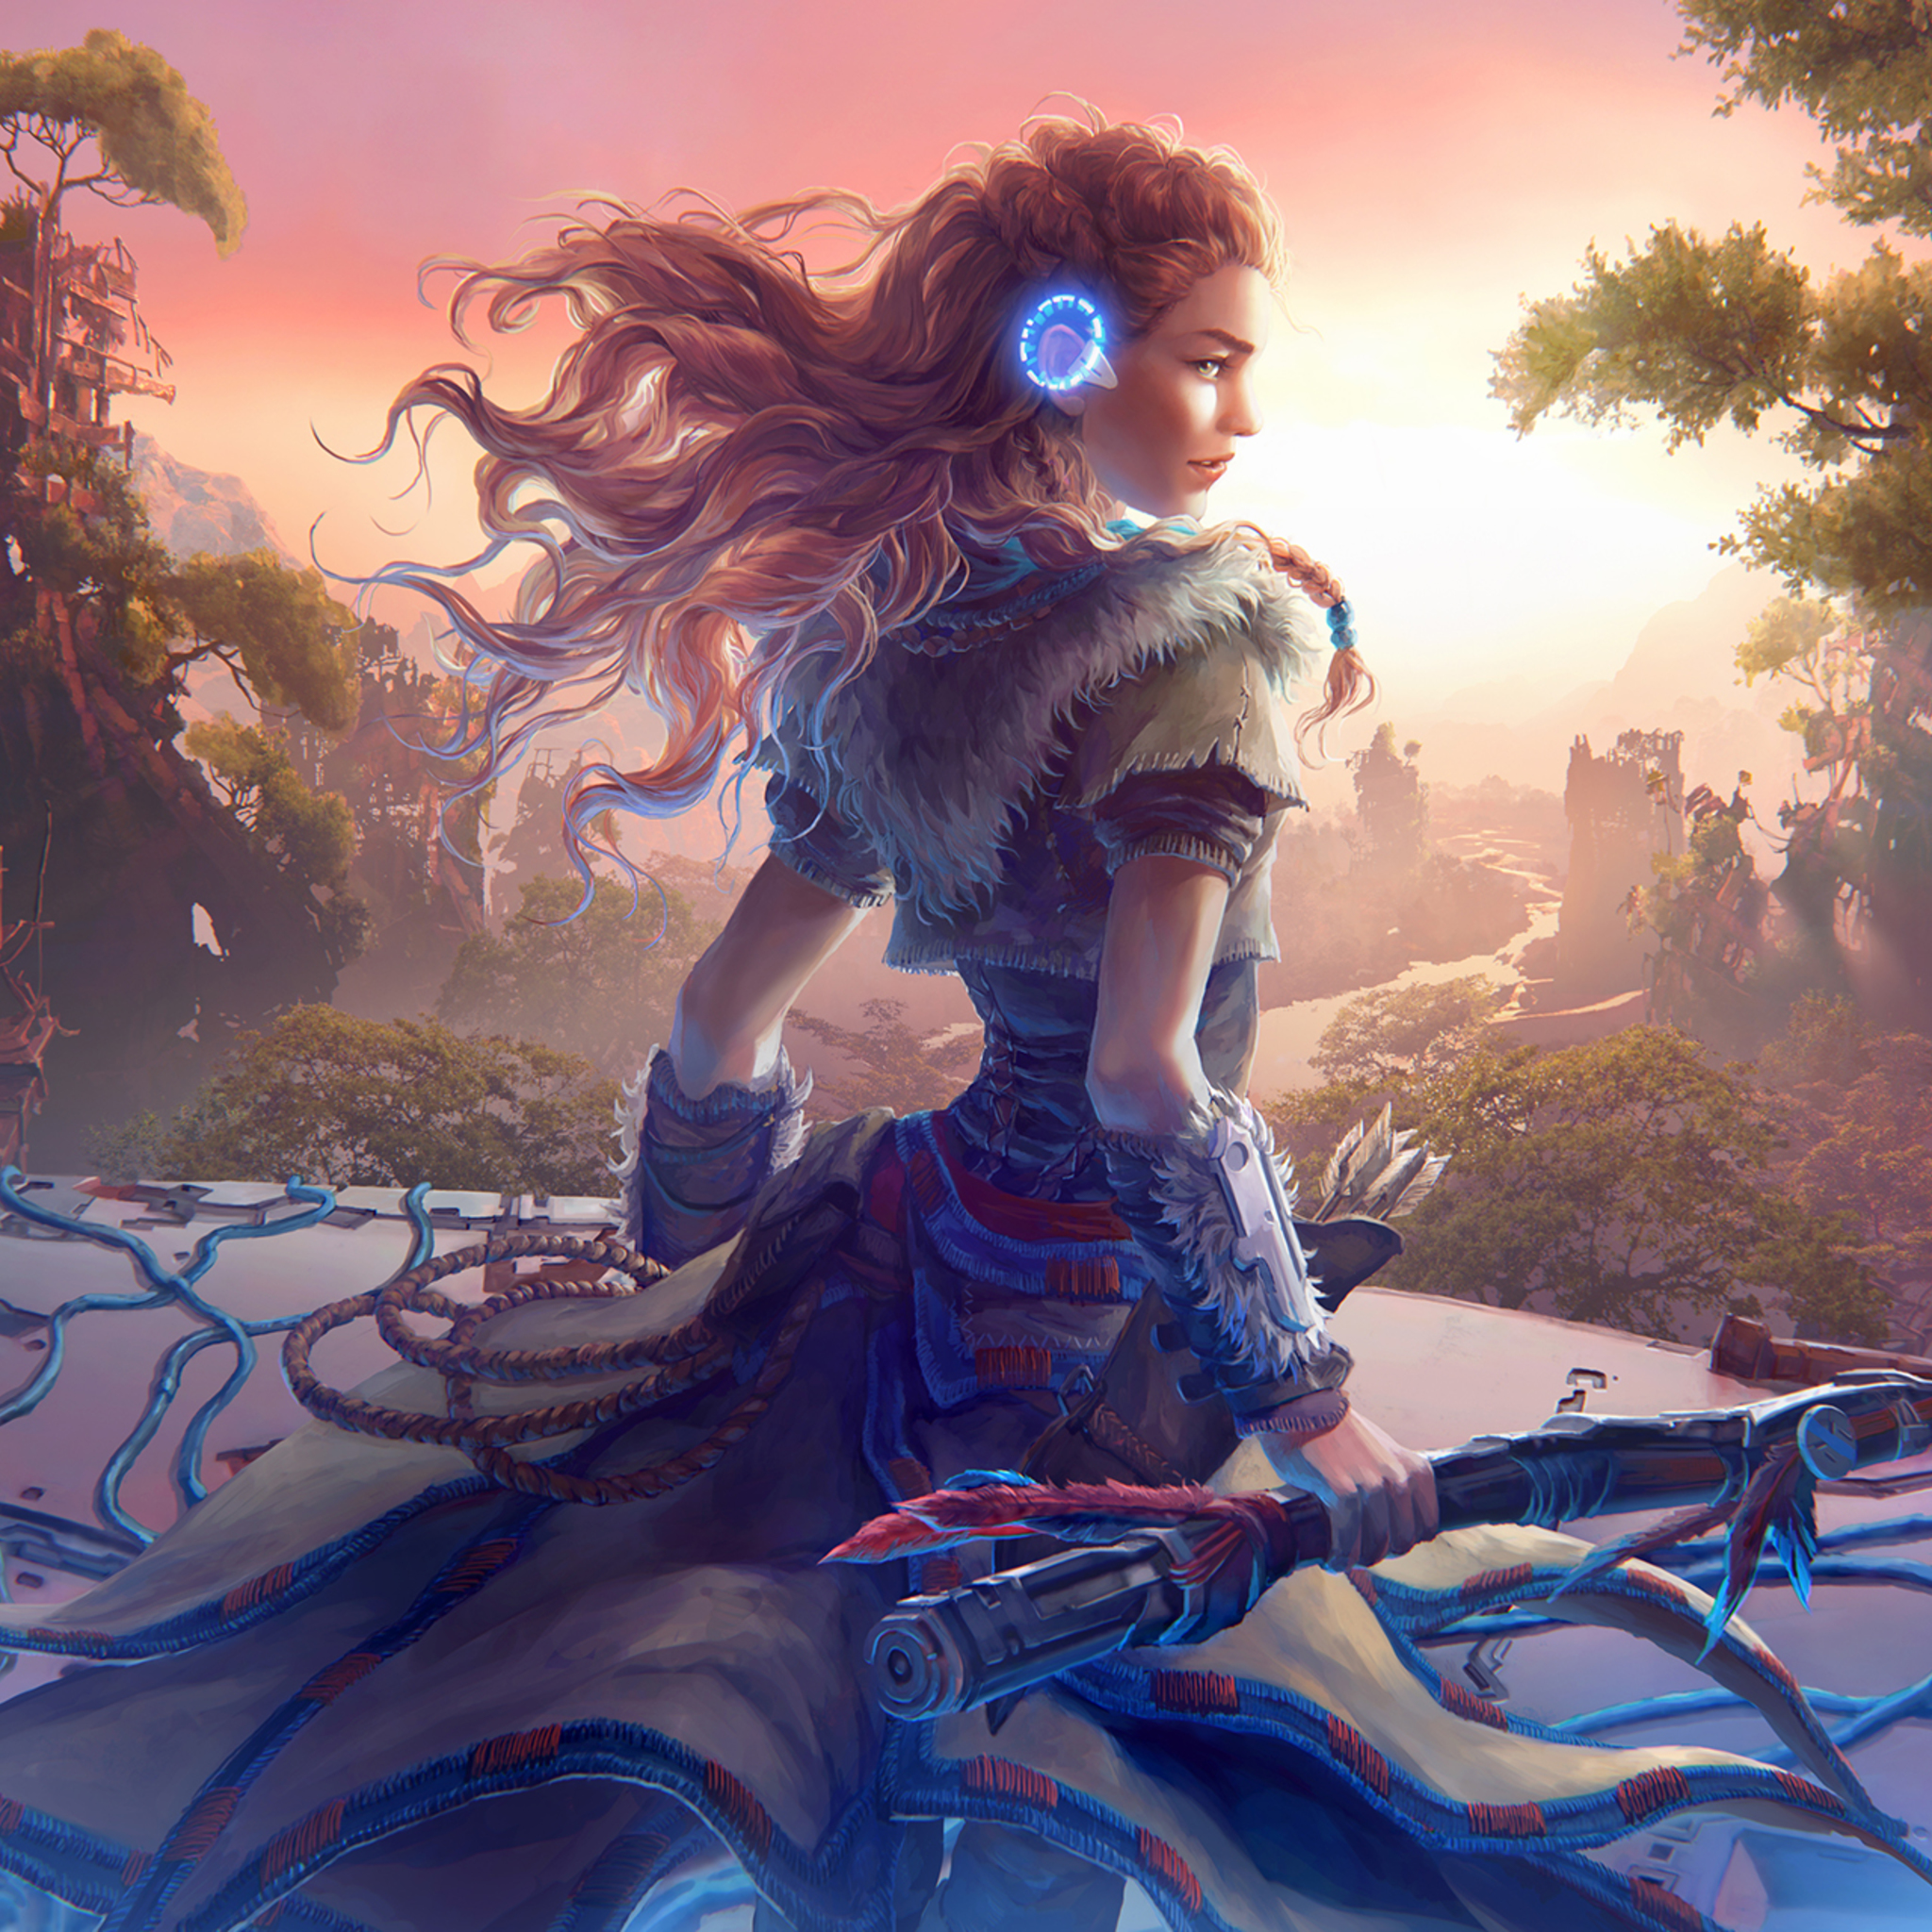 Download 1080x2160 Wallpaper Artwork Aloy Archer Video Game